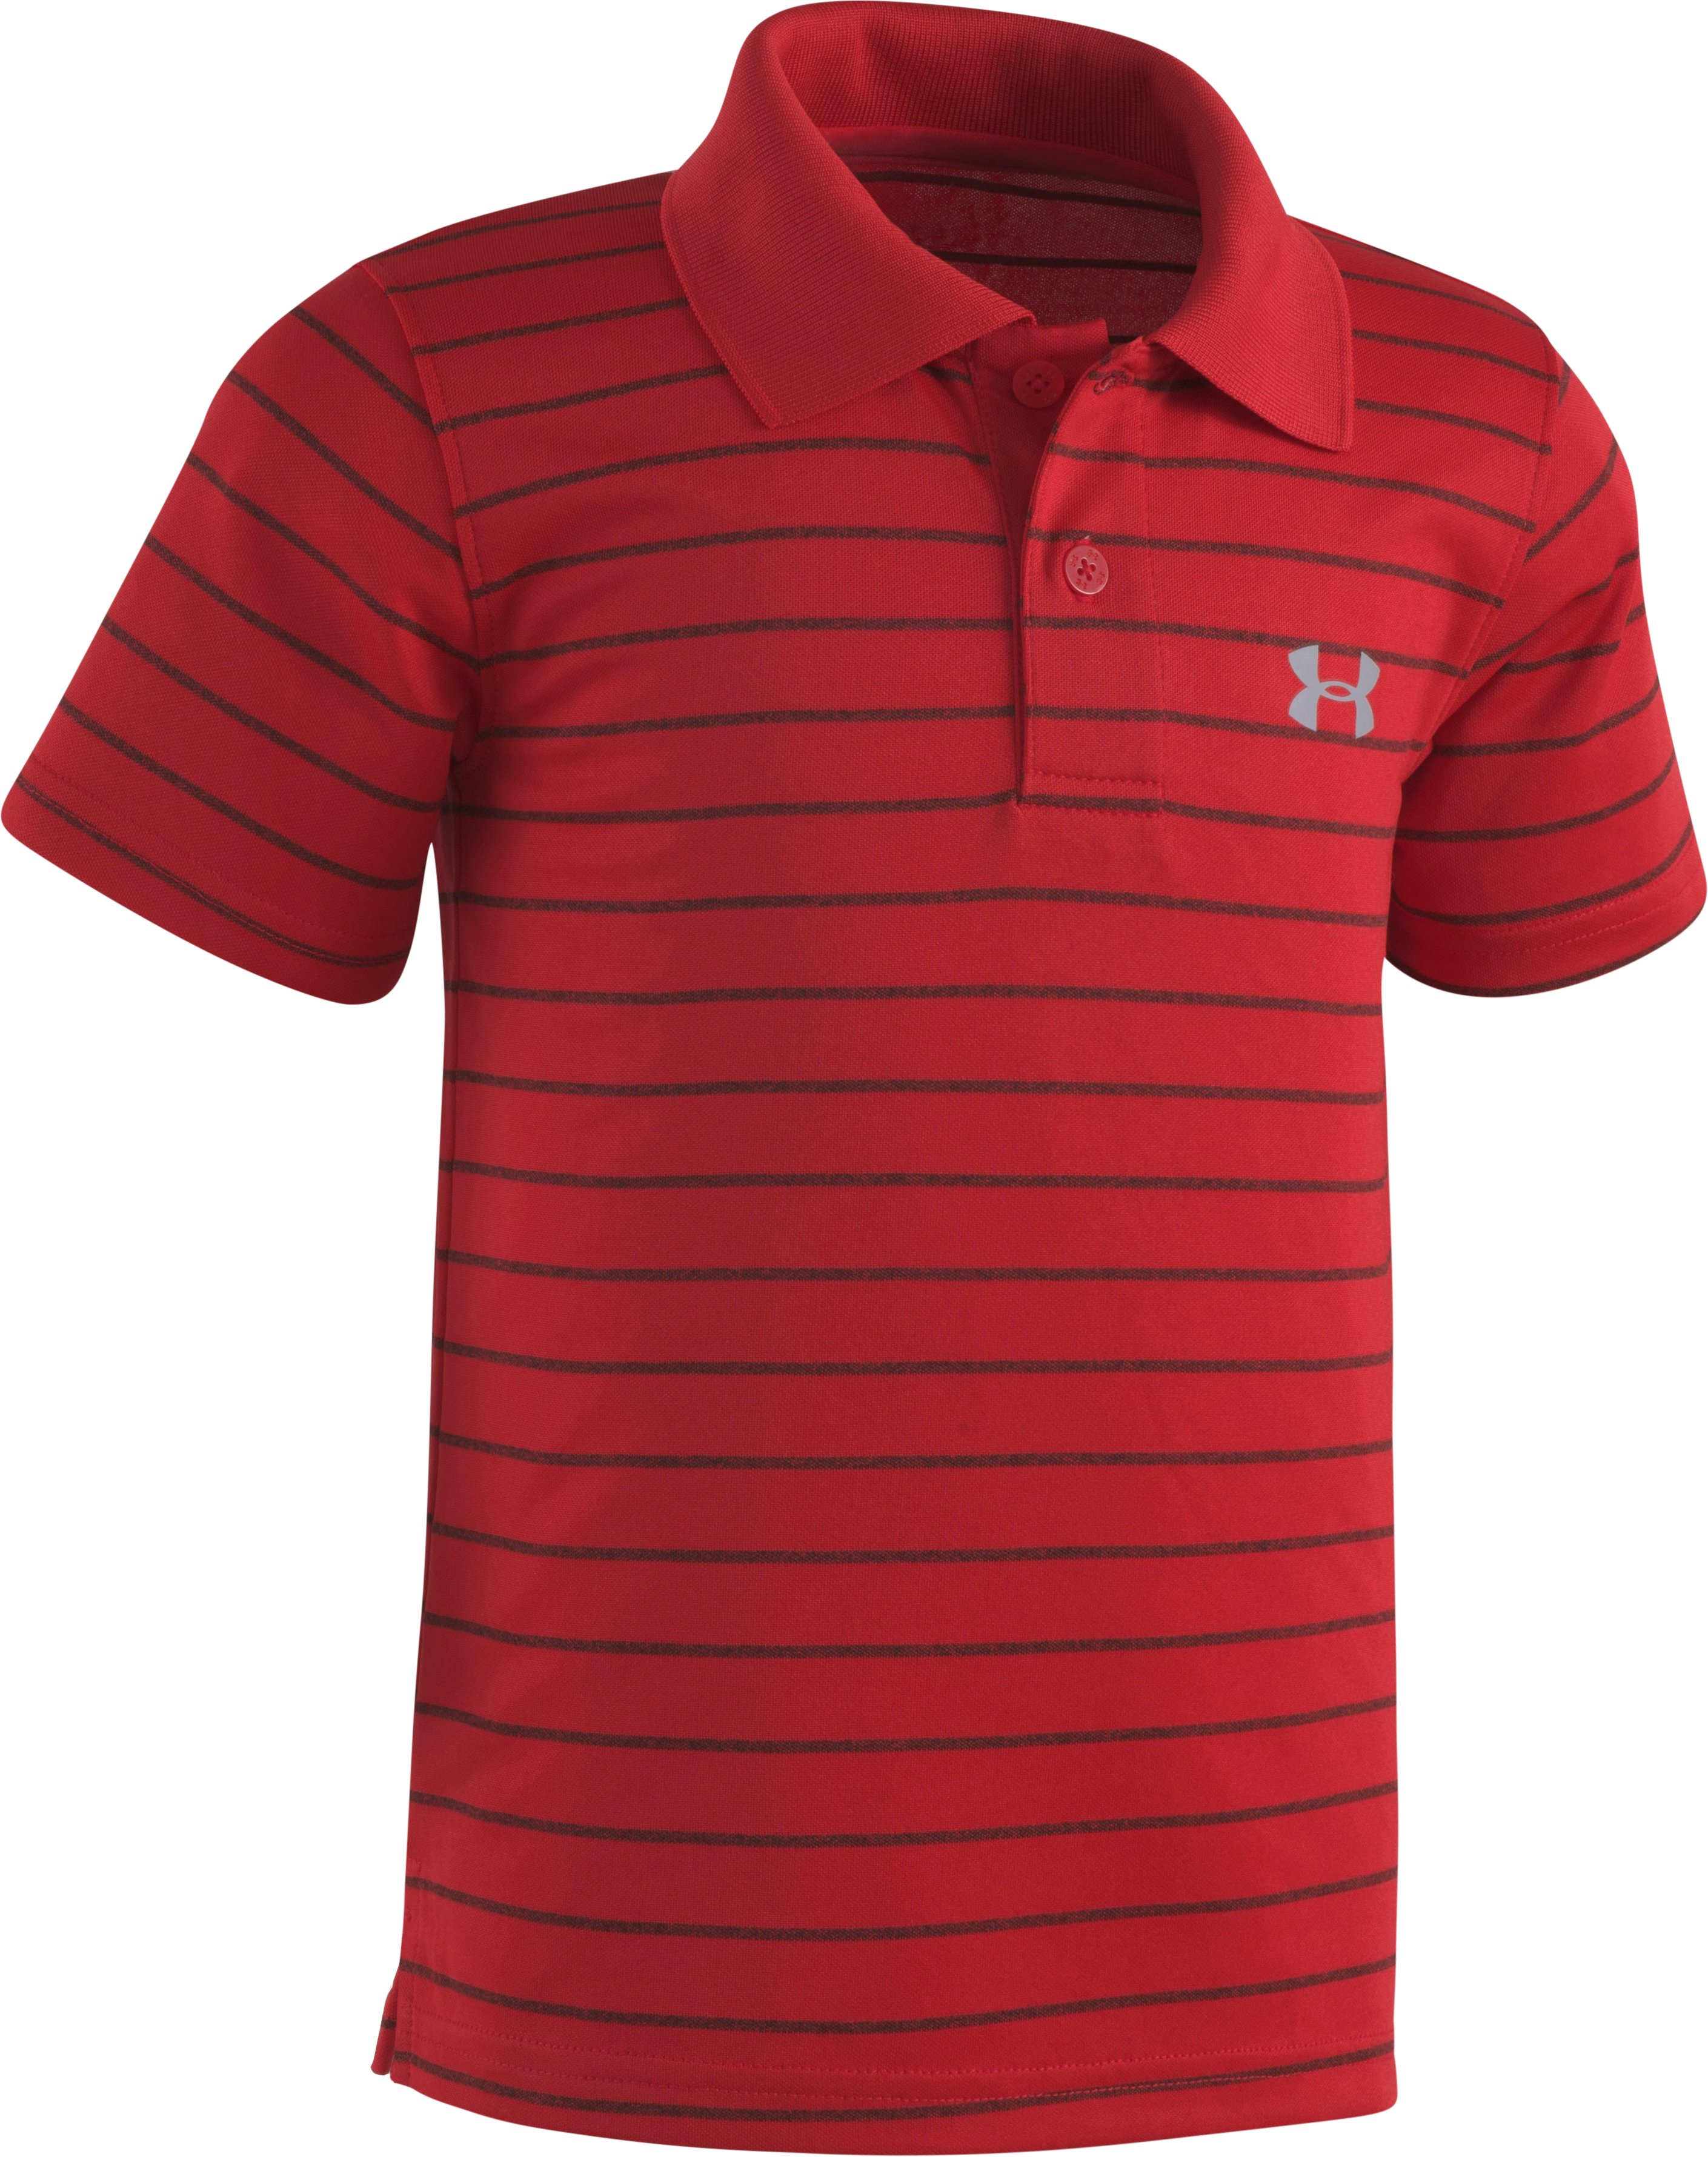 GAME STRIPE YD POLO 2T-4T, Red, zoomed